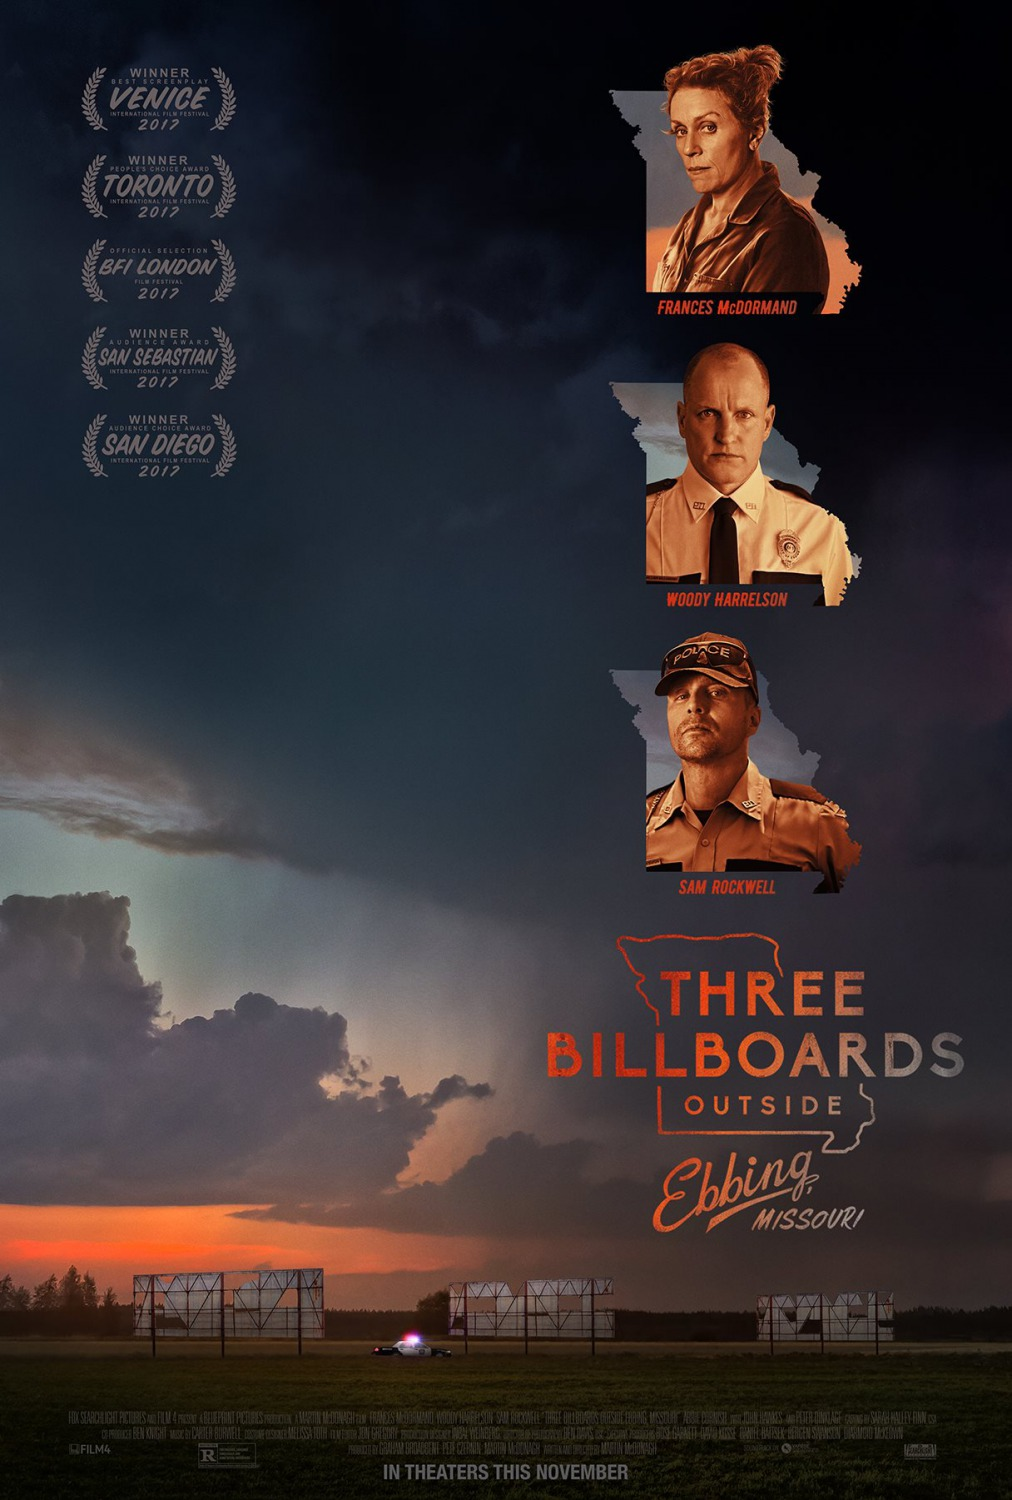 Three Billboards Outside Ebbing, Missouri   (2017) dir. Martin McDonagh Rated: R image:©2017  Fox Searchlight Pictures